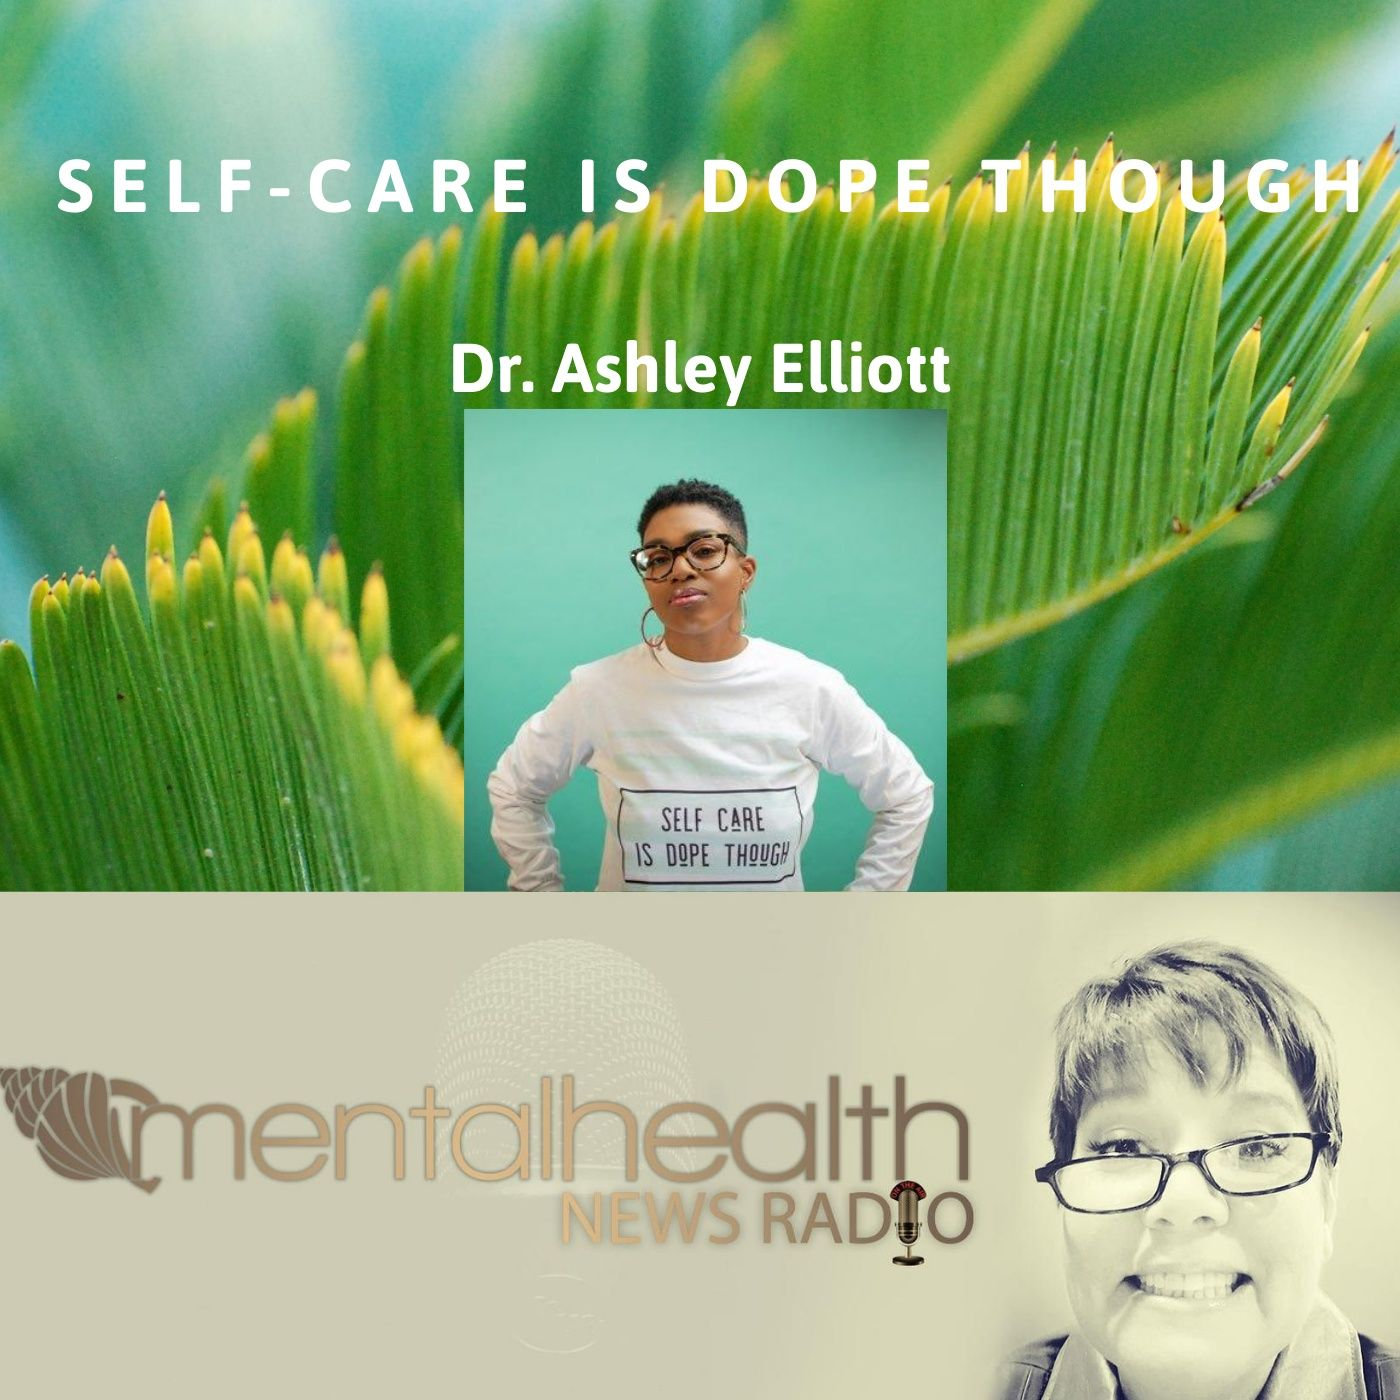 Mental Health News Radio - Self-Care is Dope Though